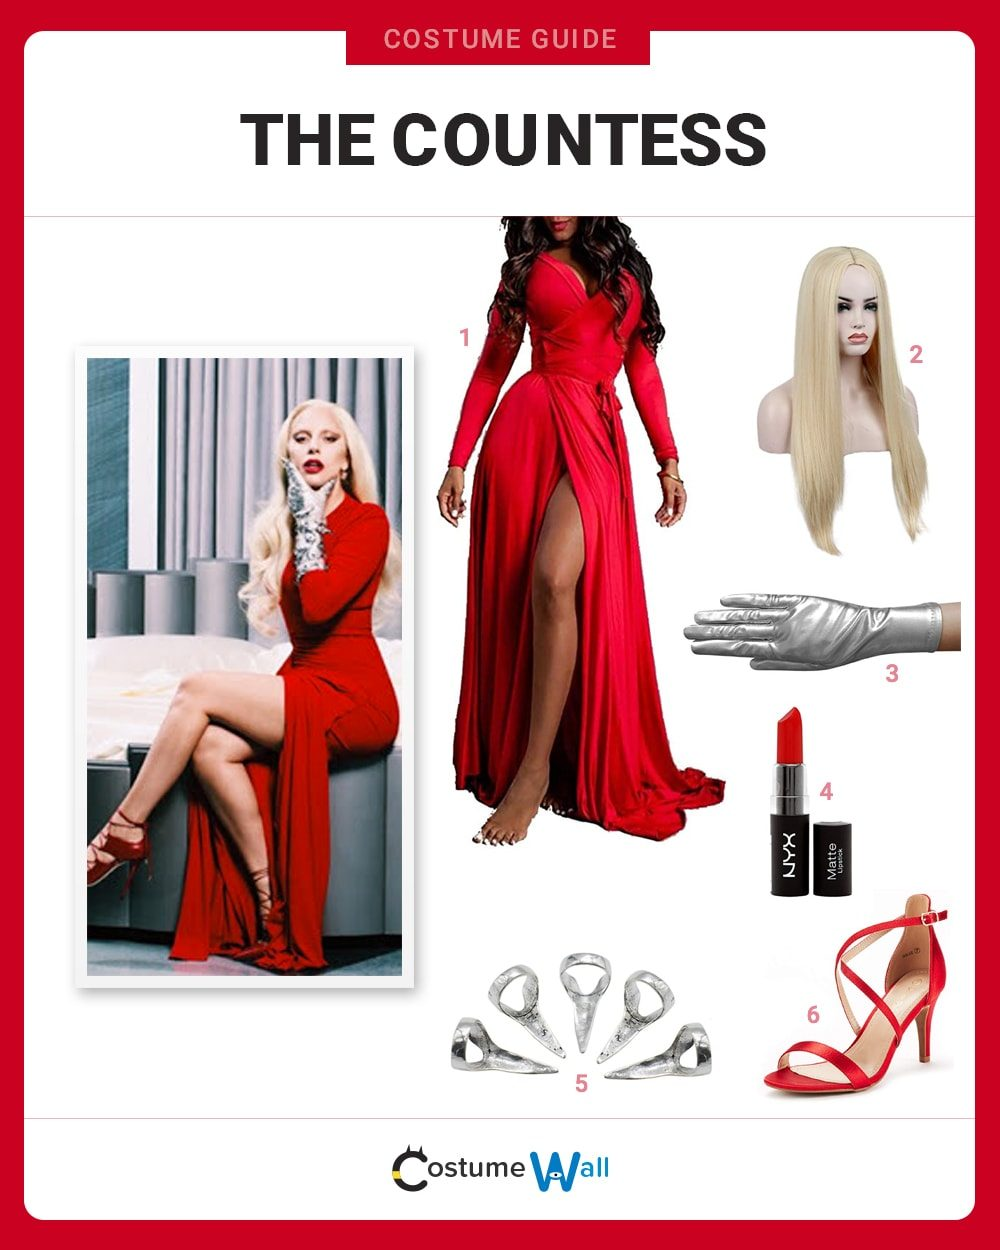 The Countess Costume Guide